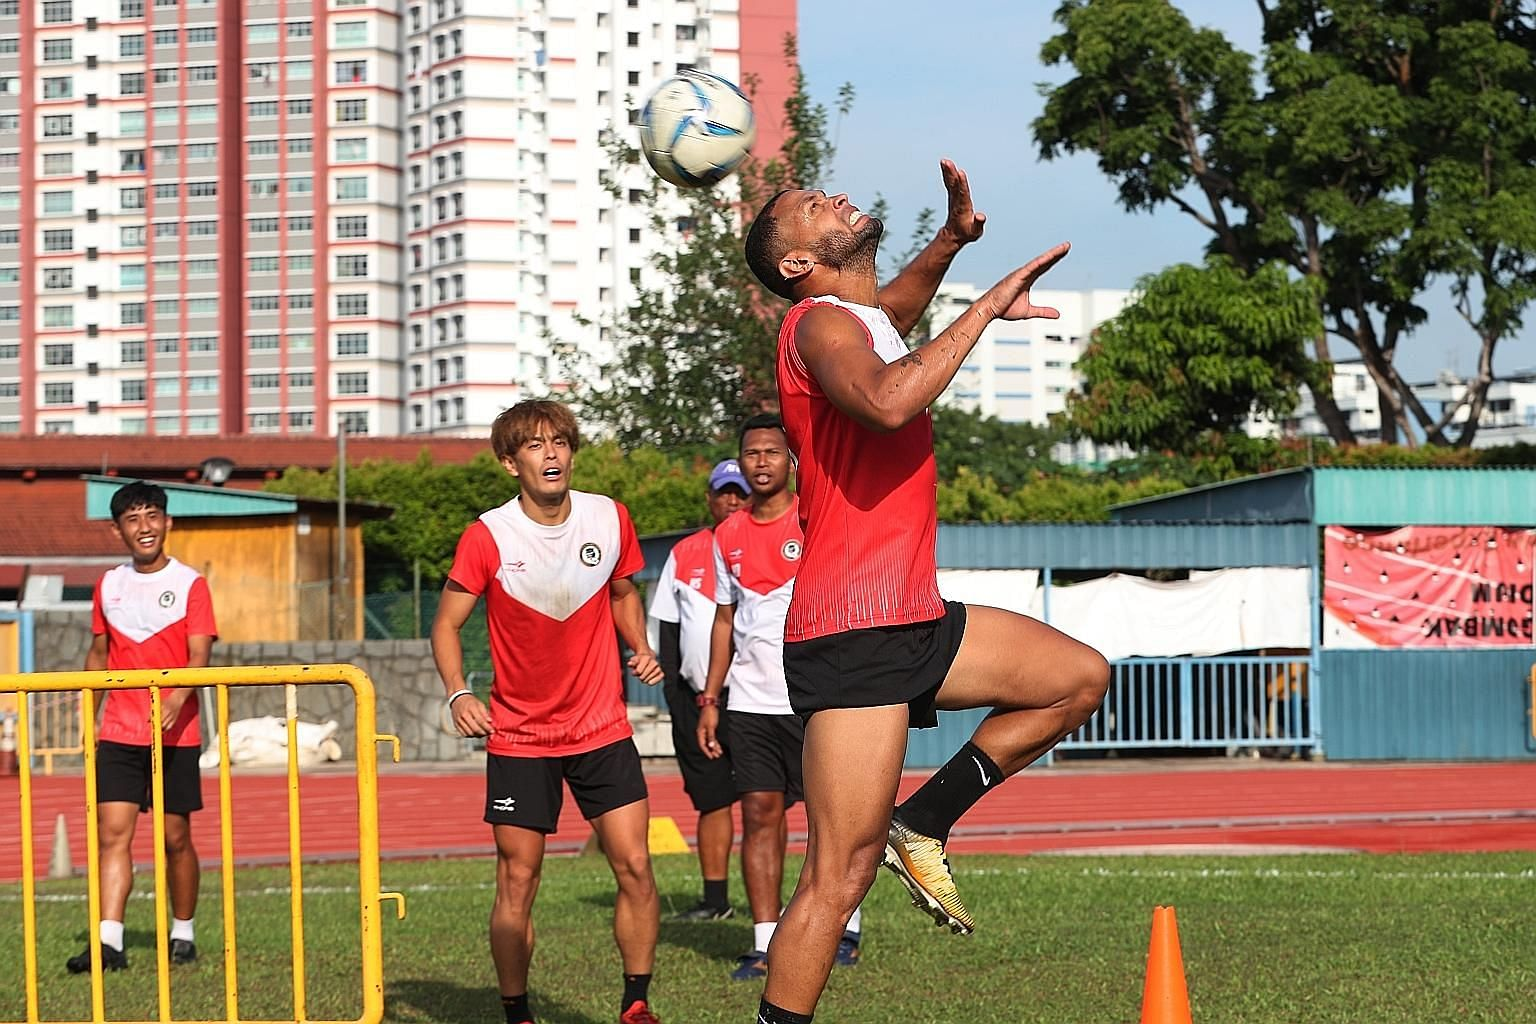 Tanjong Pagar's Luiz Junior heading the ball during pre-season training in February. The FAS last month disbursed an additional subsidy of over $600,000 for local clubs to pay their players' full wages during the SPL hiatus.